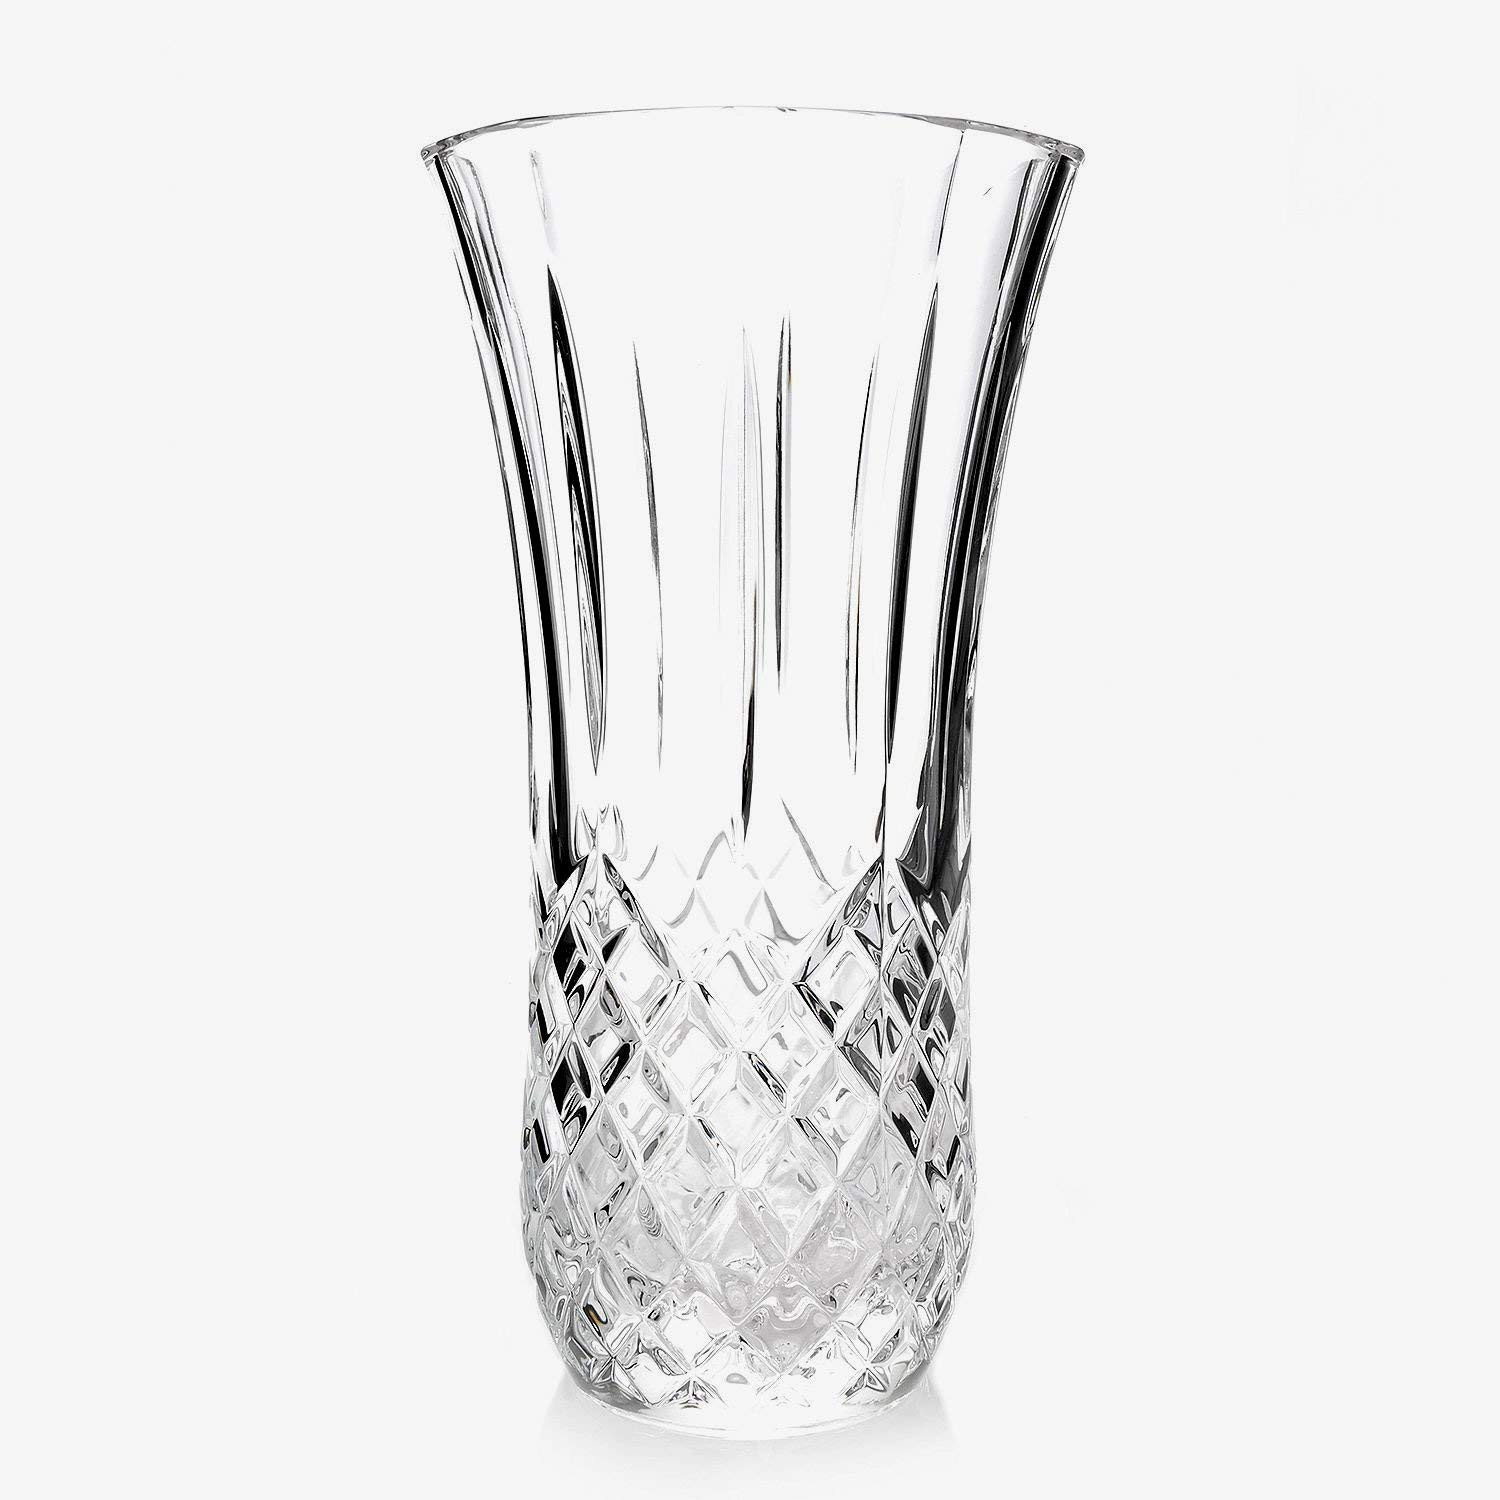 15 Stunning Marquis by Waterford 9 Inch Vase 2021 free download marquis by waterford 9 inch vase of amazon com marquis by waterford 11 5 diamond wedge cut daffodil inside amazon com marquis by waterford 11 5 diamond wedge cut daffodil vase home kitchen